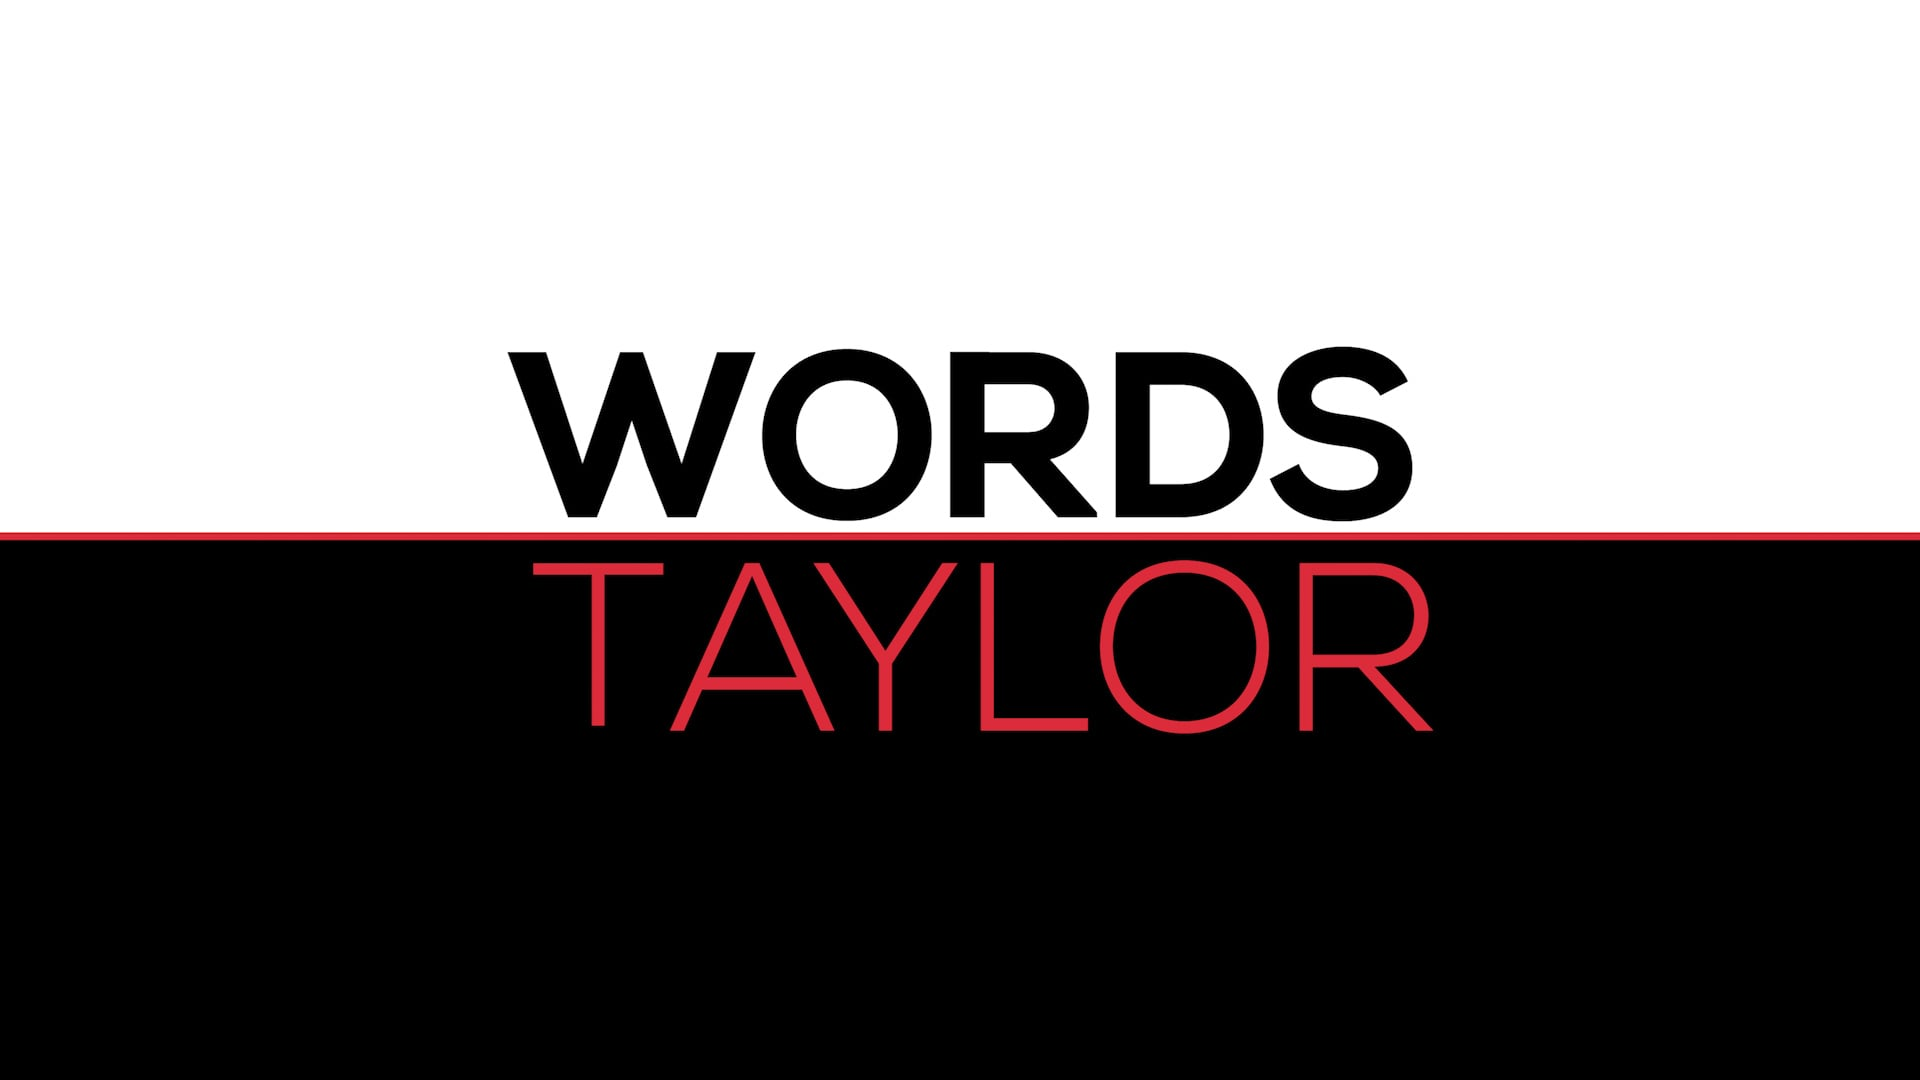 Words Taylor - Power Move // SOCIAL